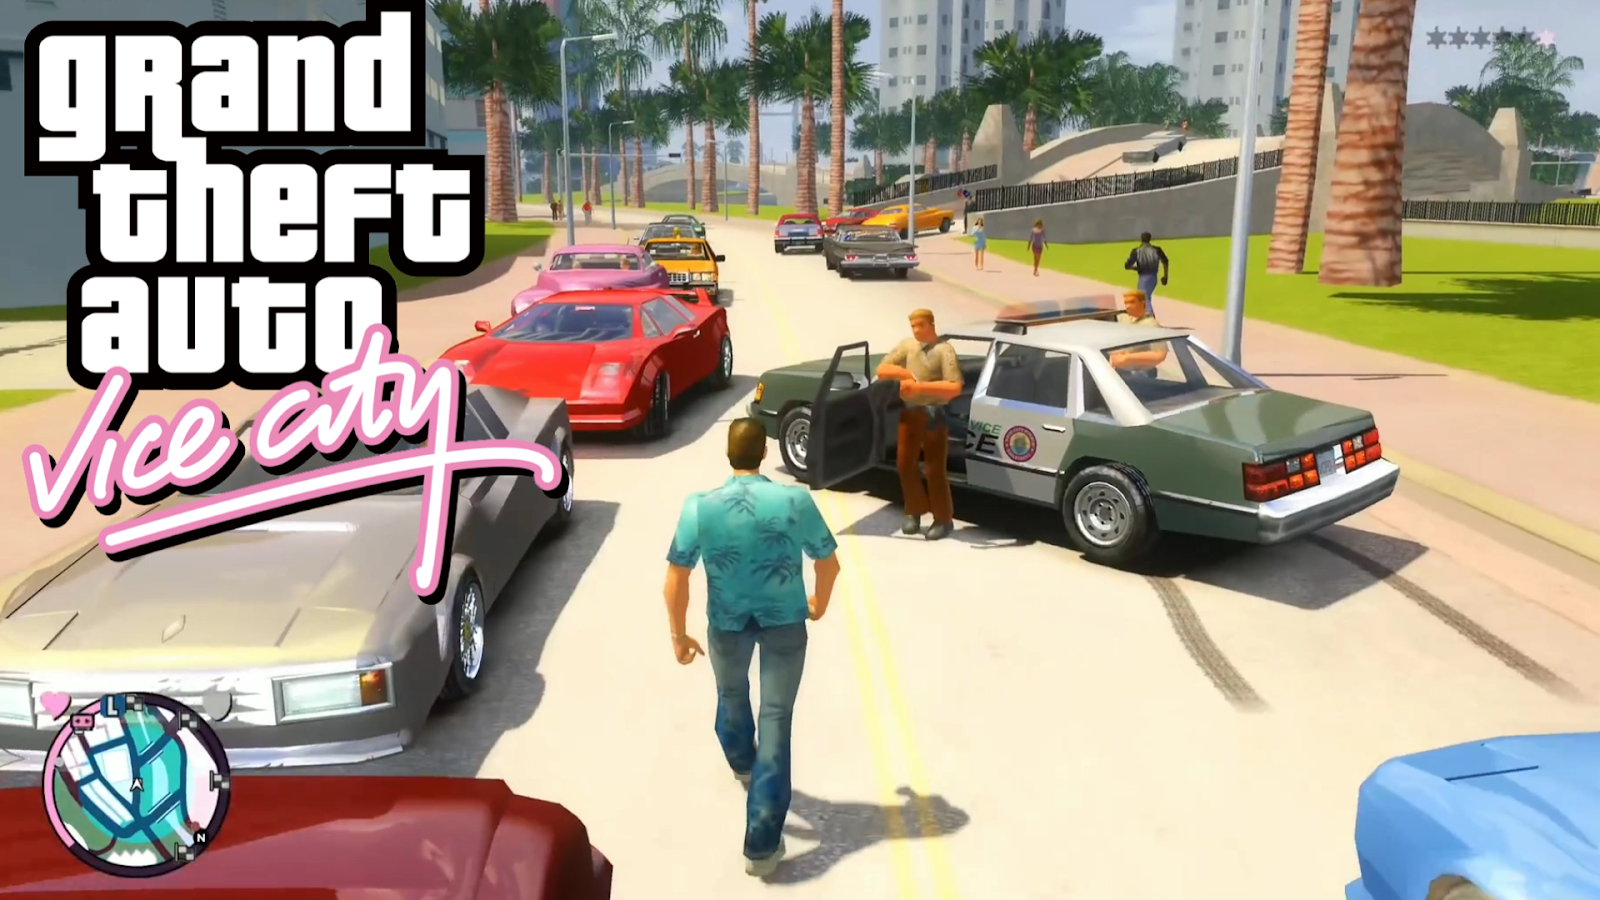 gta vice city apk free download for android lollipop